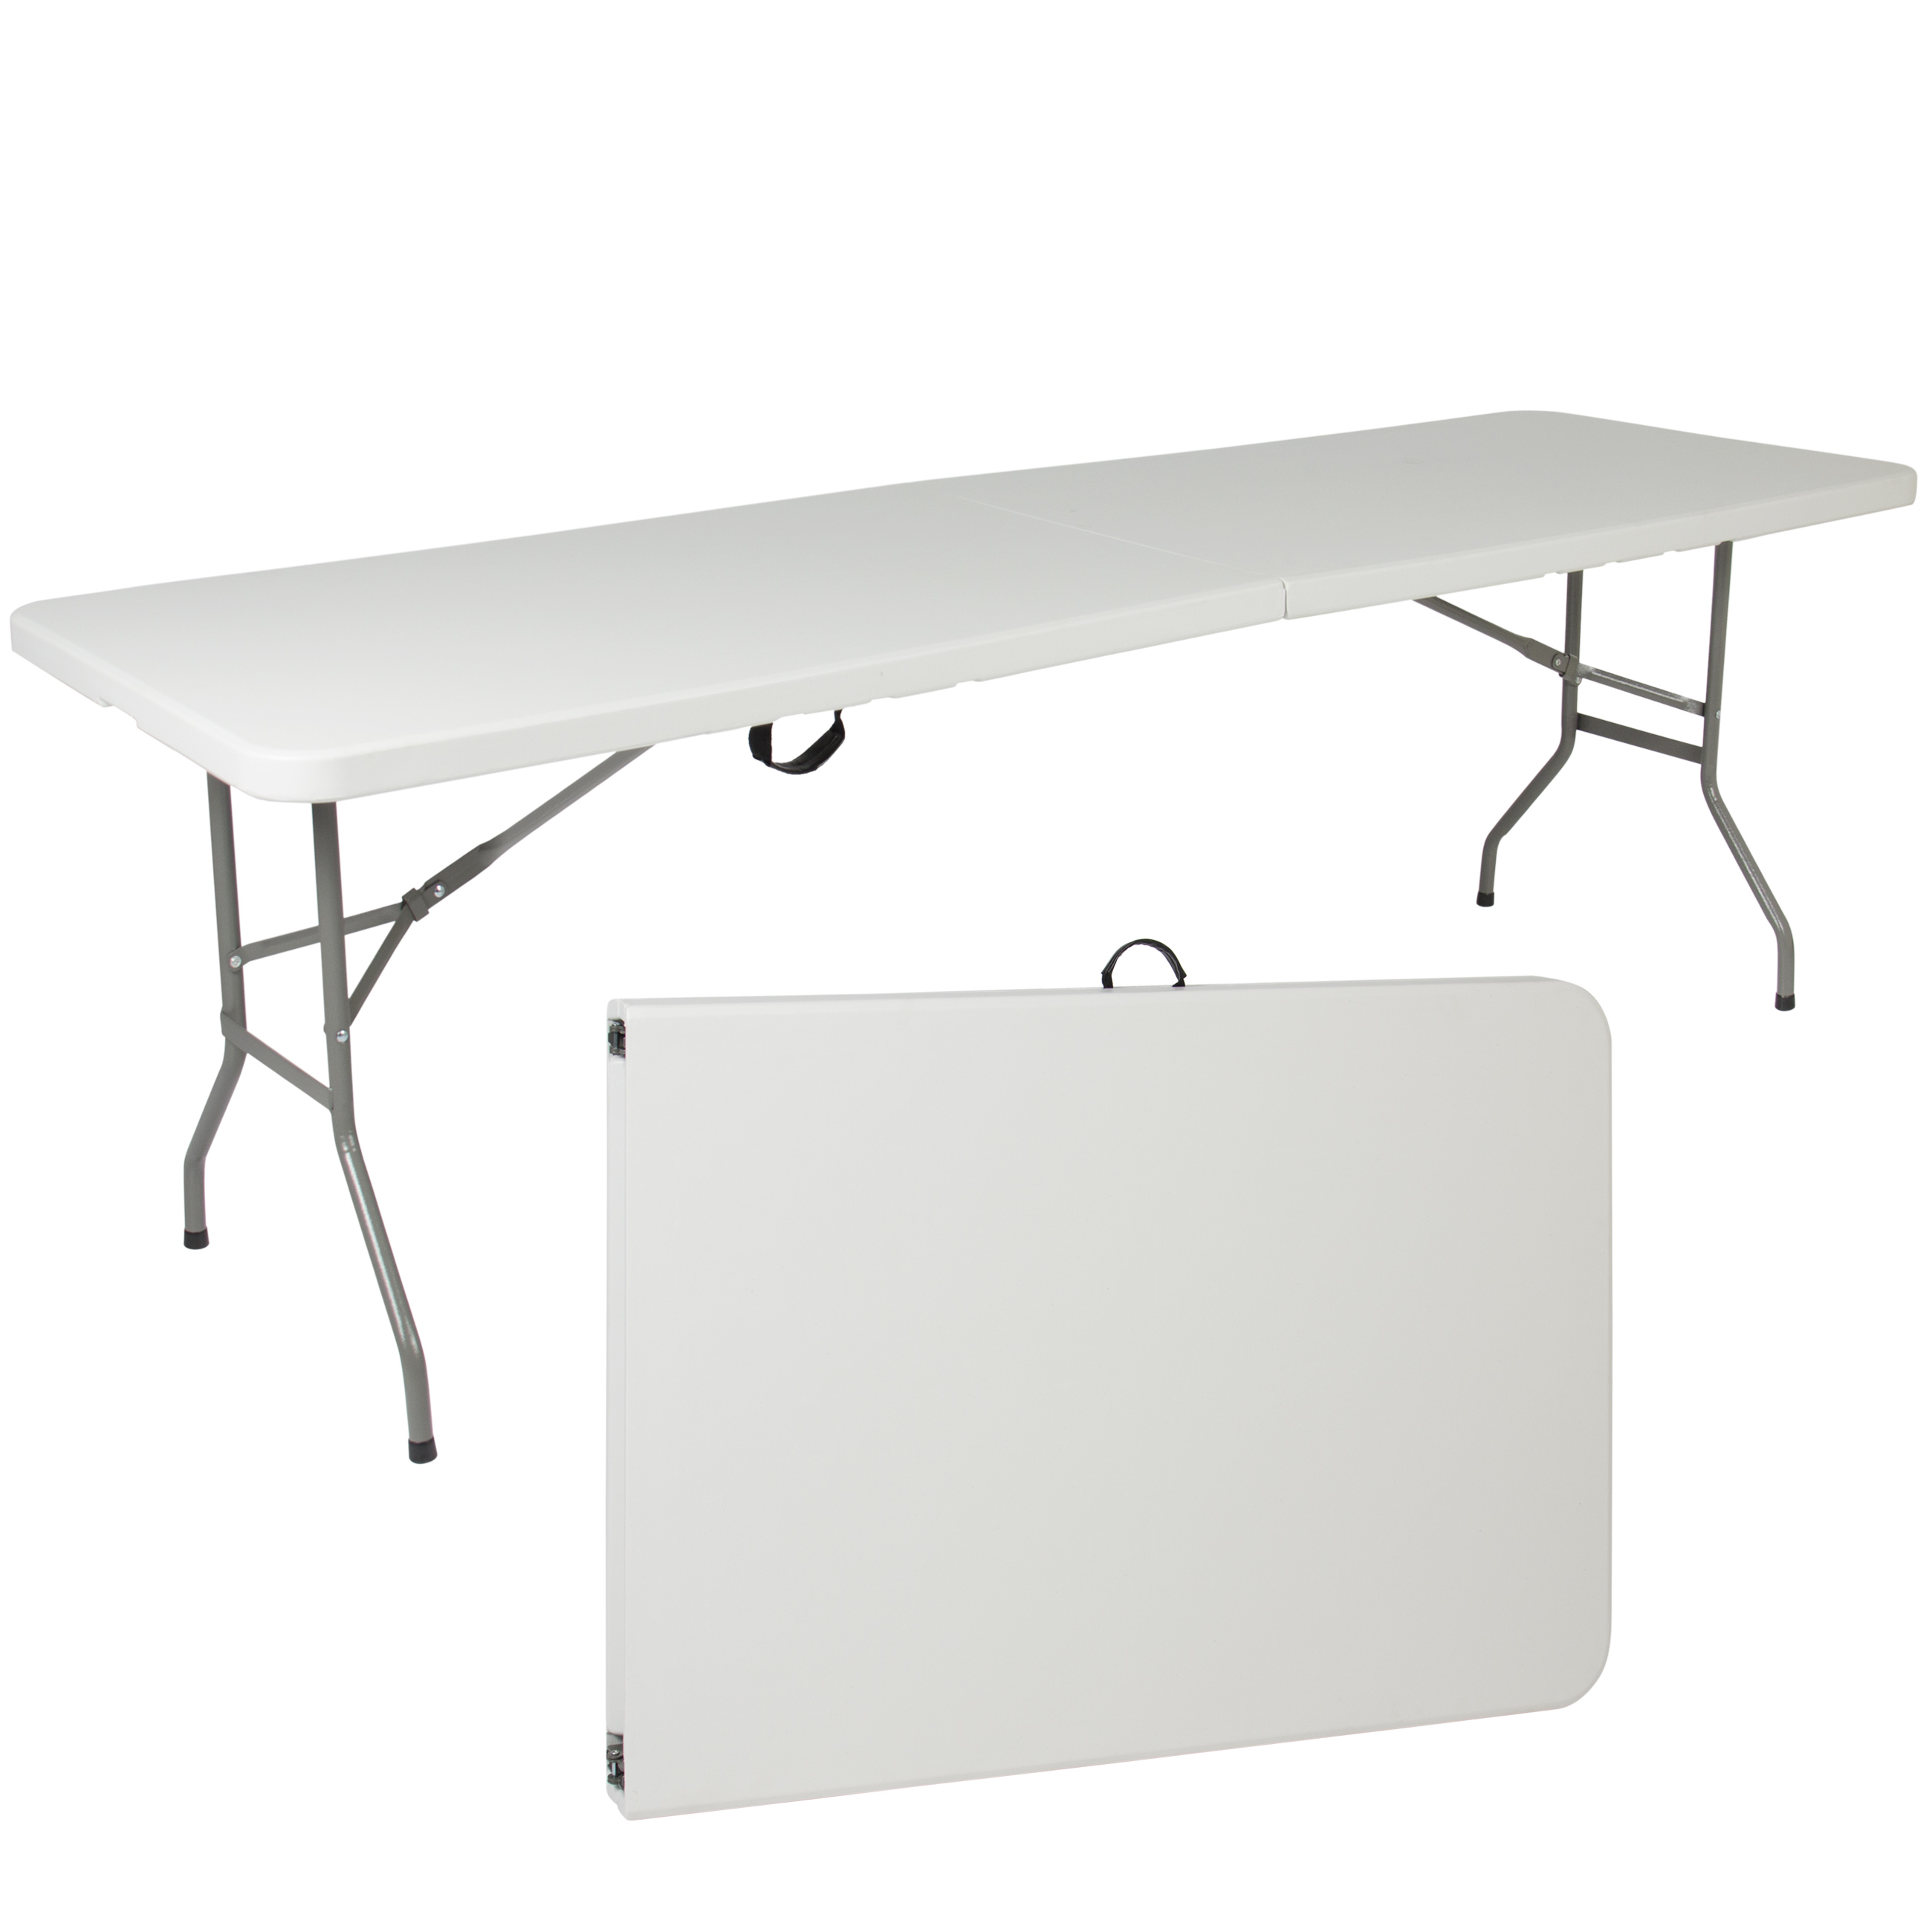 Attrayant Best Choice Products 8ft Folding Portable Plastic Table For Indoor,  Outdoor, Picnic, Party